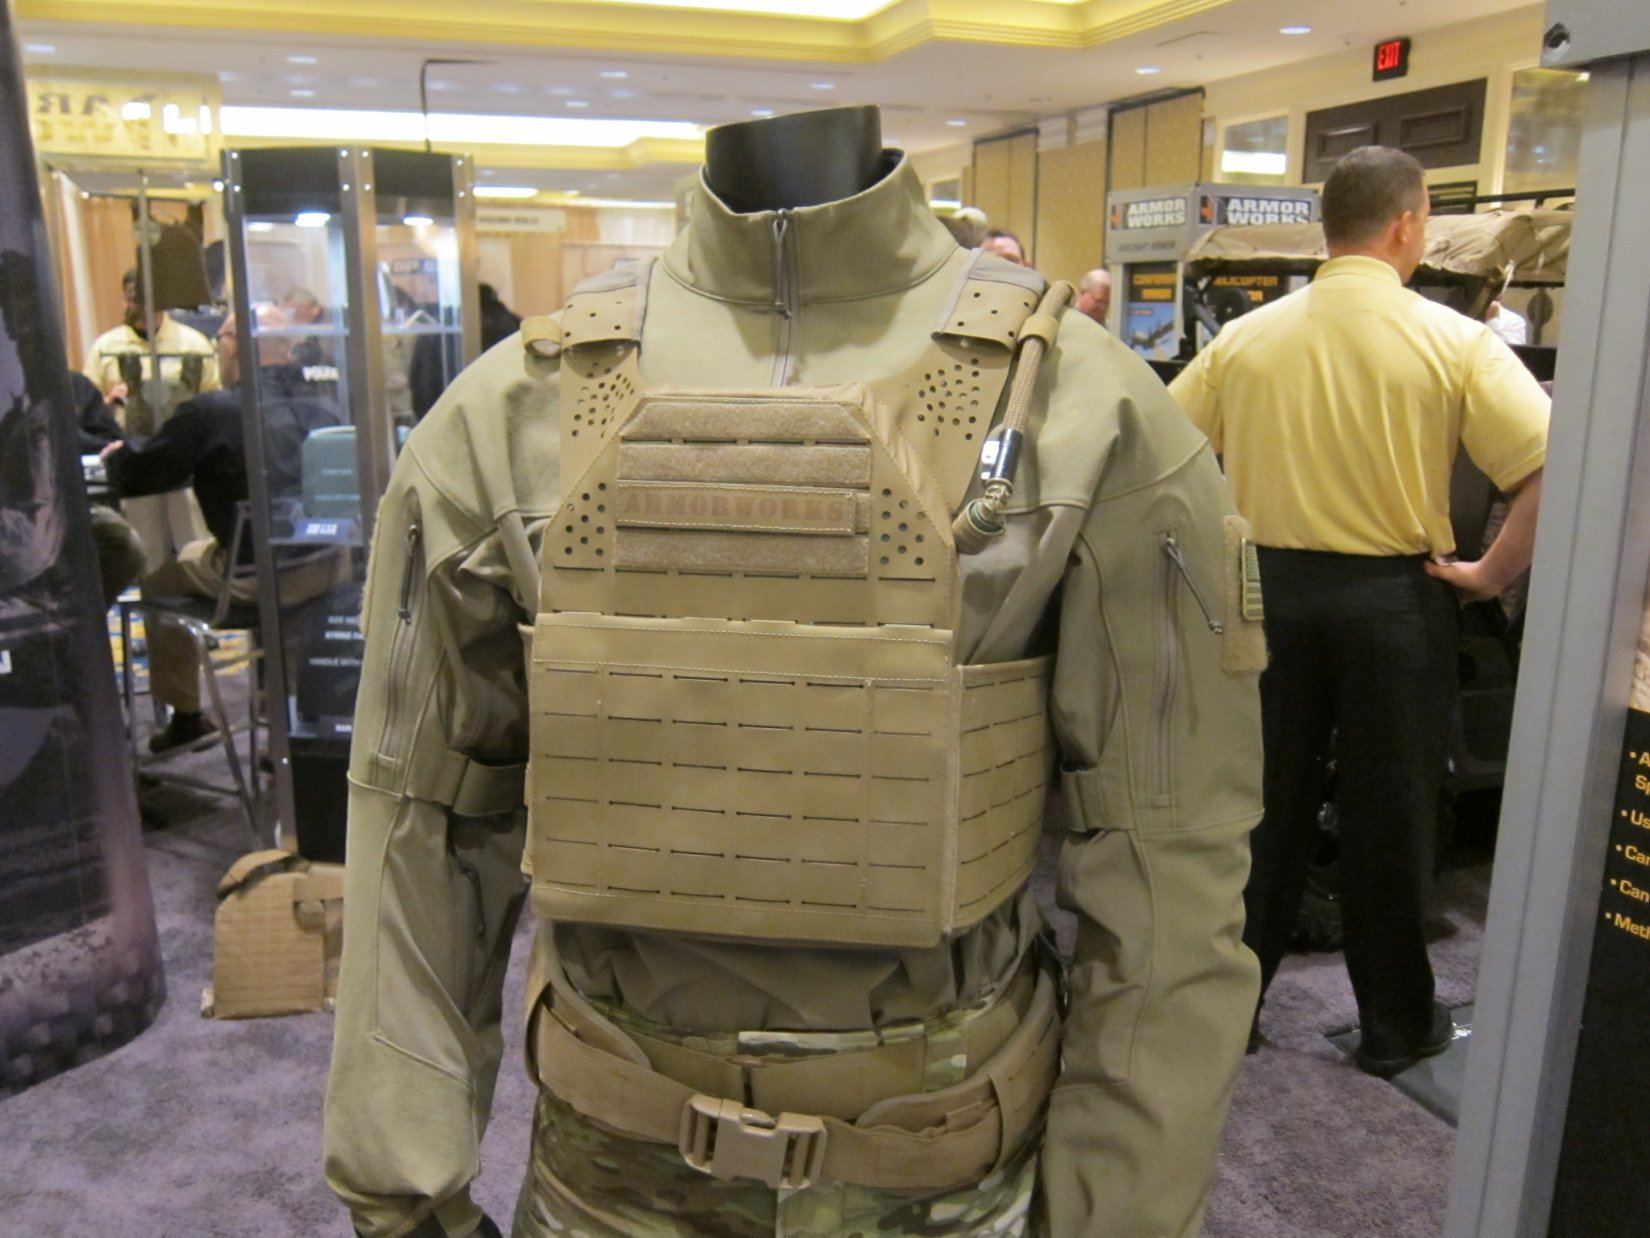 ArmorWorks Modular Plate Carrier MPC Tactical Armor Plate Carrier Alex Gallo SHOT Show 2012 DefenseReview.com DR 4 ArmorWorks Modular Plate Carrier (MPC): Scalable High Tech Minimalist/Low Profile Tactical Armor Plate Carrier (Military Body Armor) with SOURCE Tactical Hydration/Water Bladder System and Super Strong Polymer Non MOLLE MOLLE/PALS Webbing System and Shoulder Straps at SHOT Show 2012 (Video!)